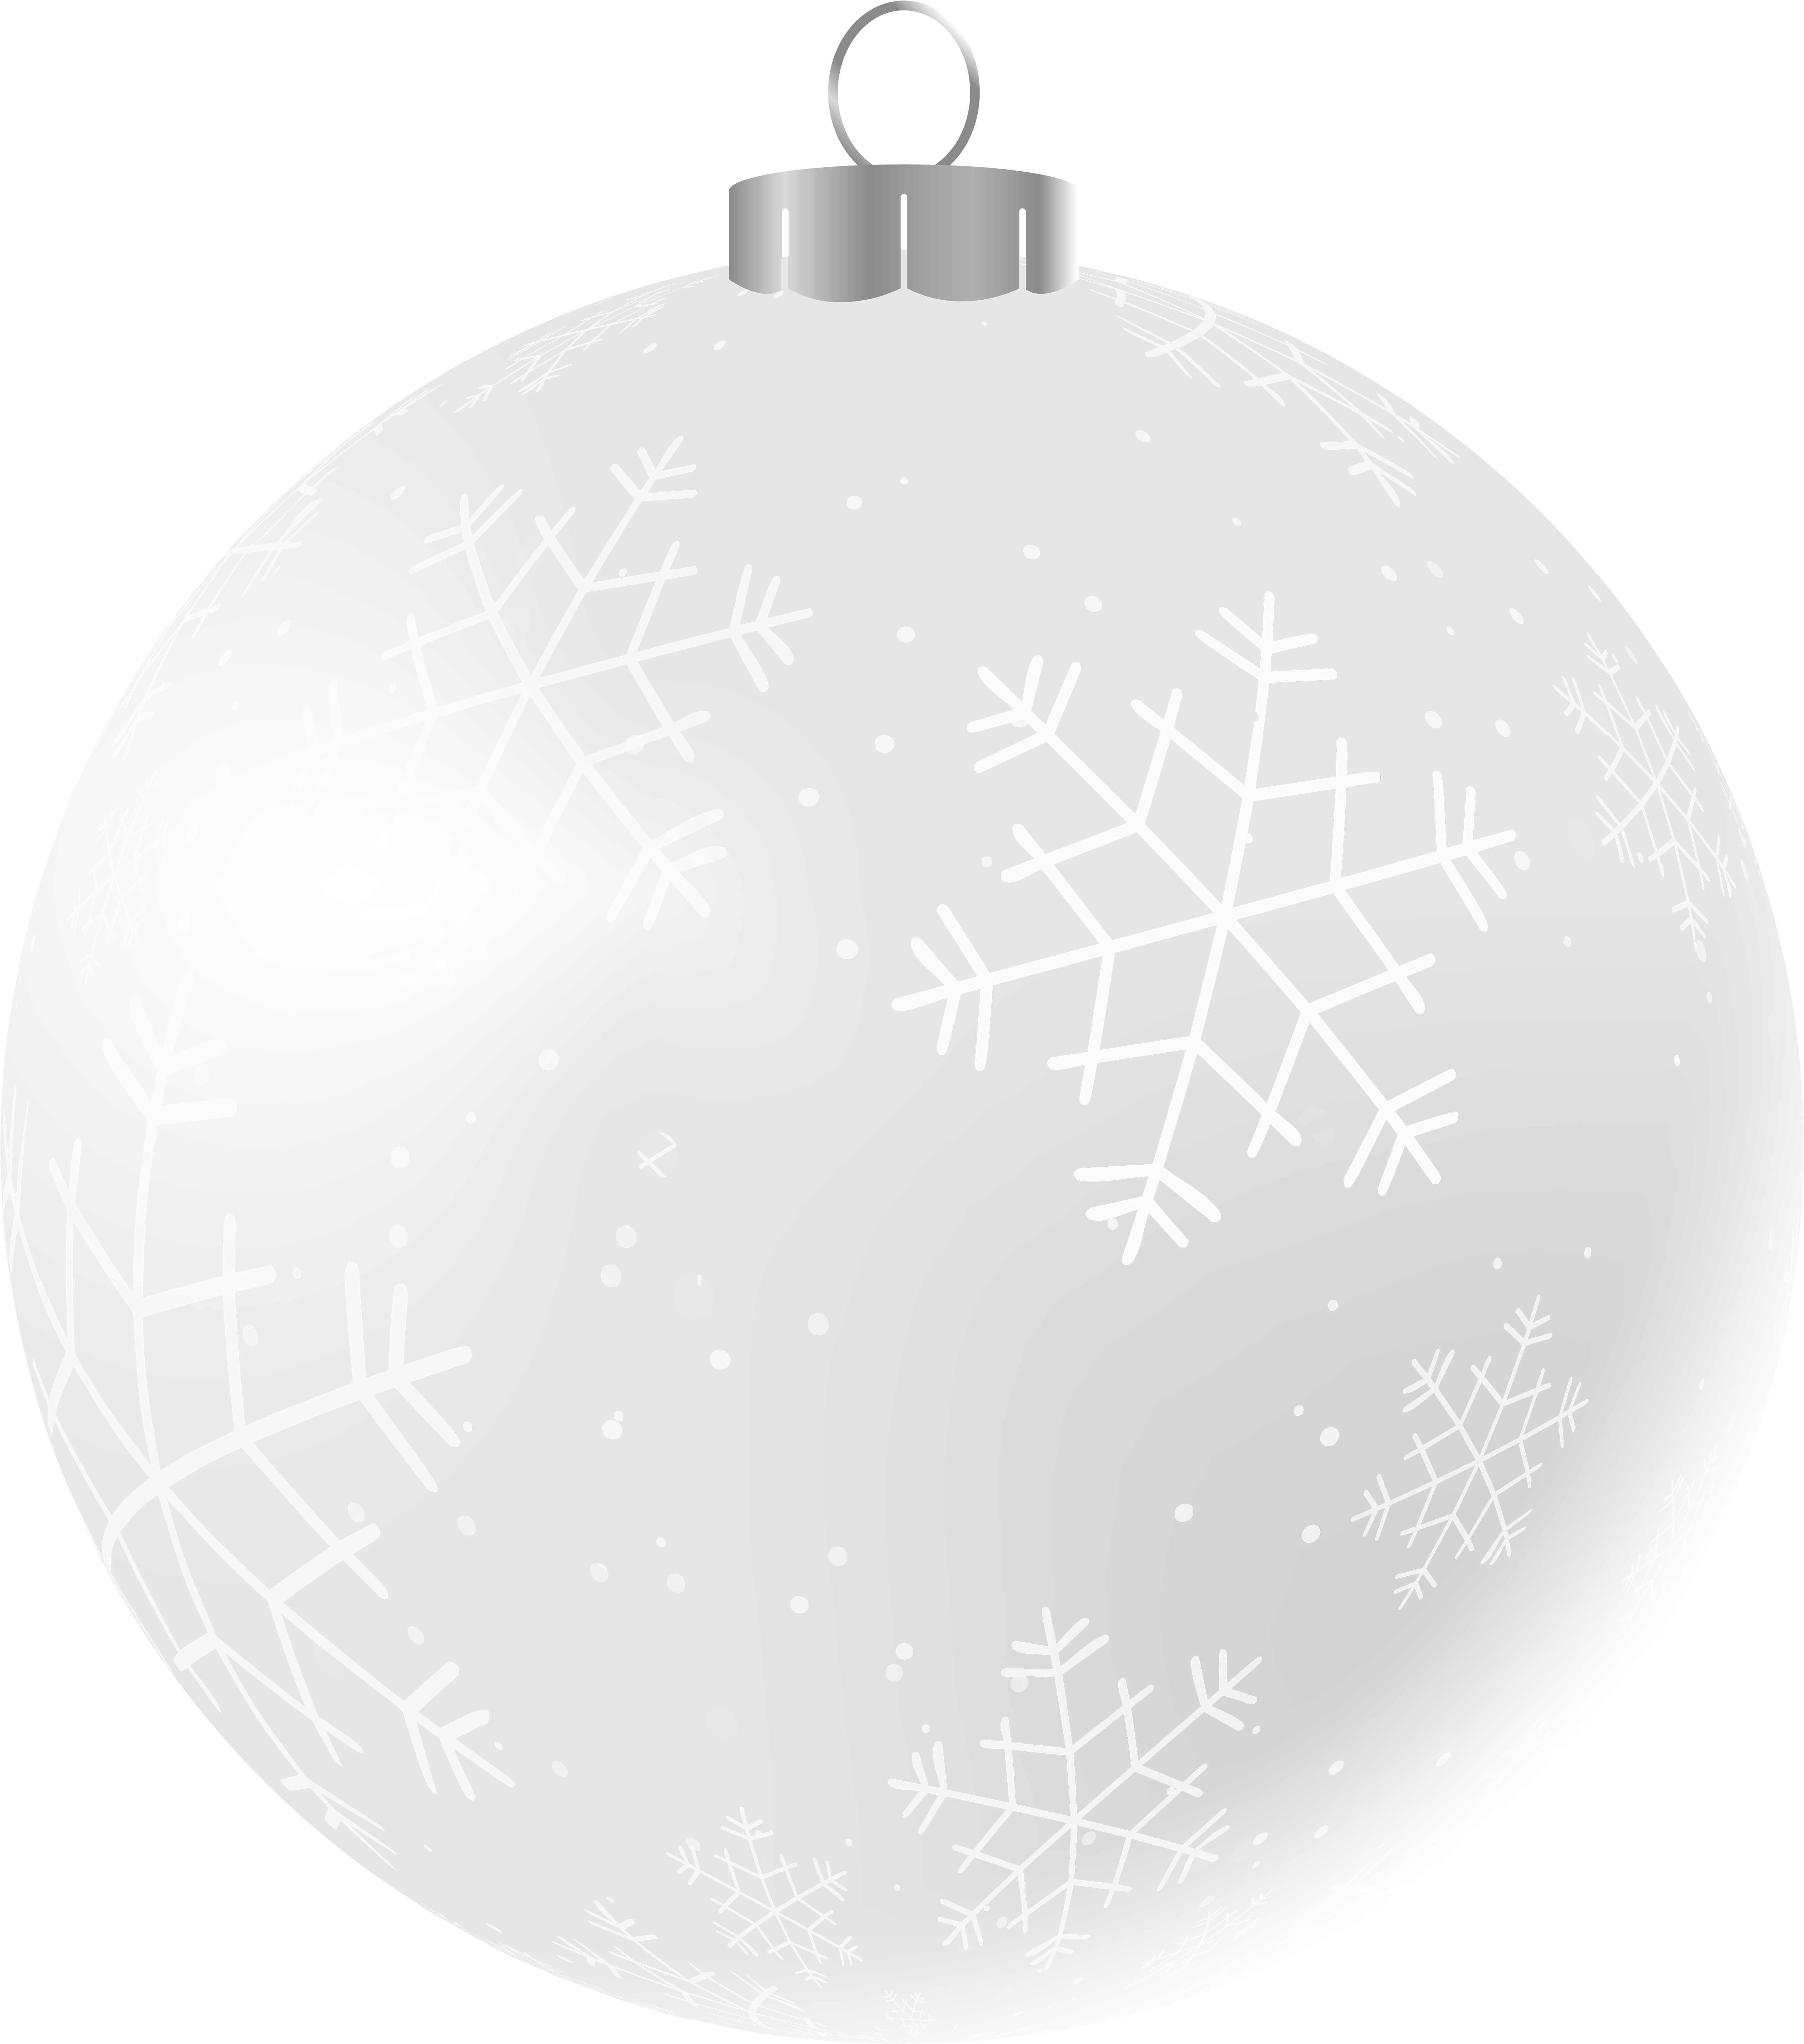 Christmas ornament clipart white pictures on Cliparts Pub ... - White Christmas Ornament Clip Art